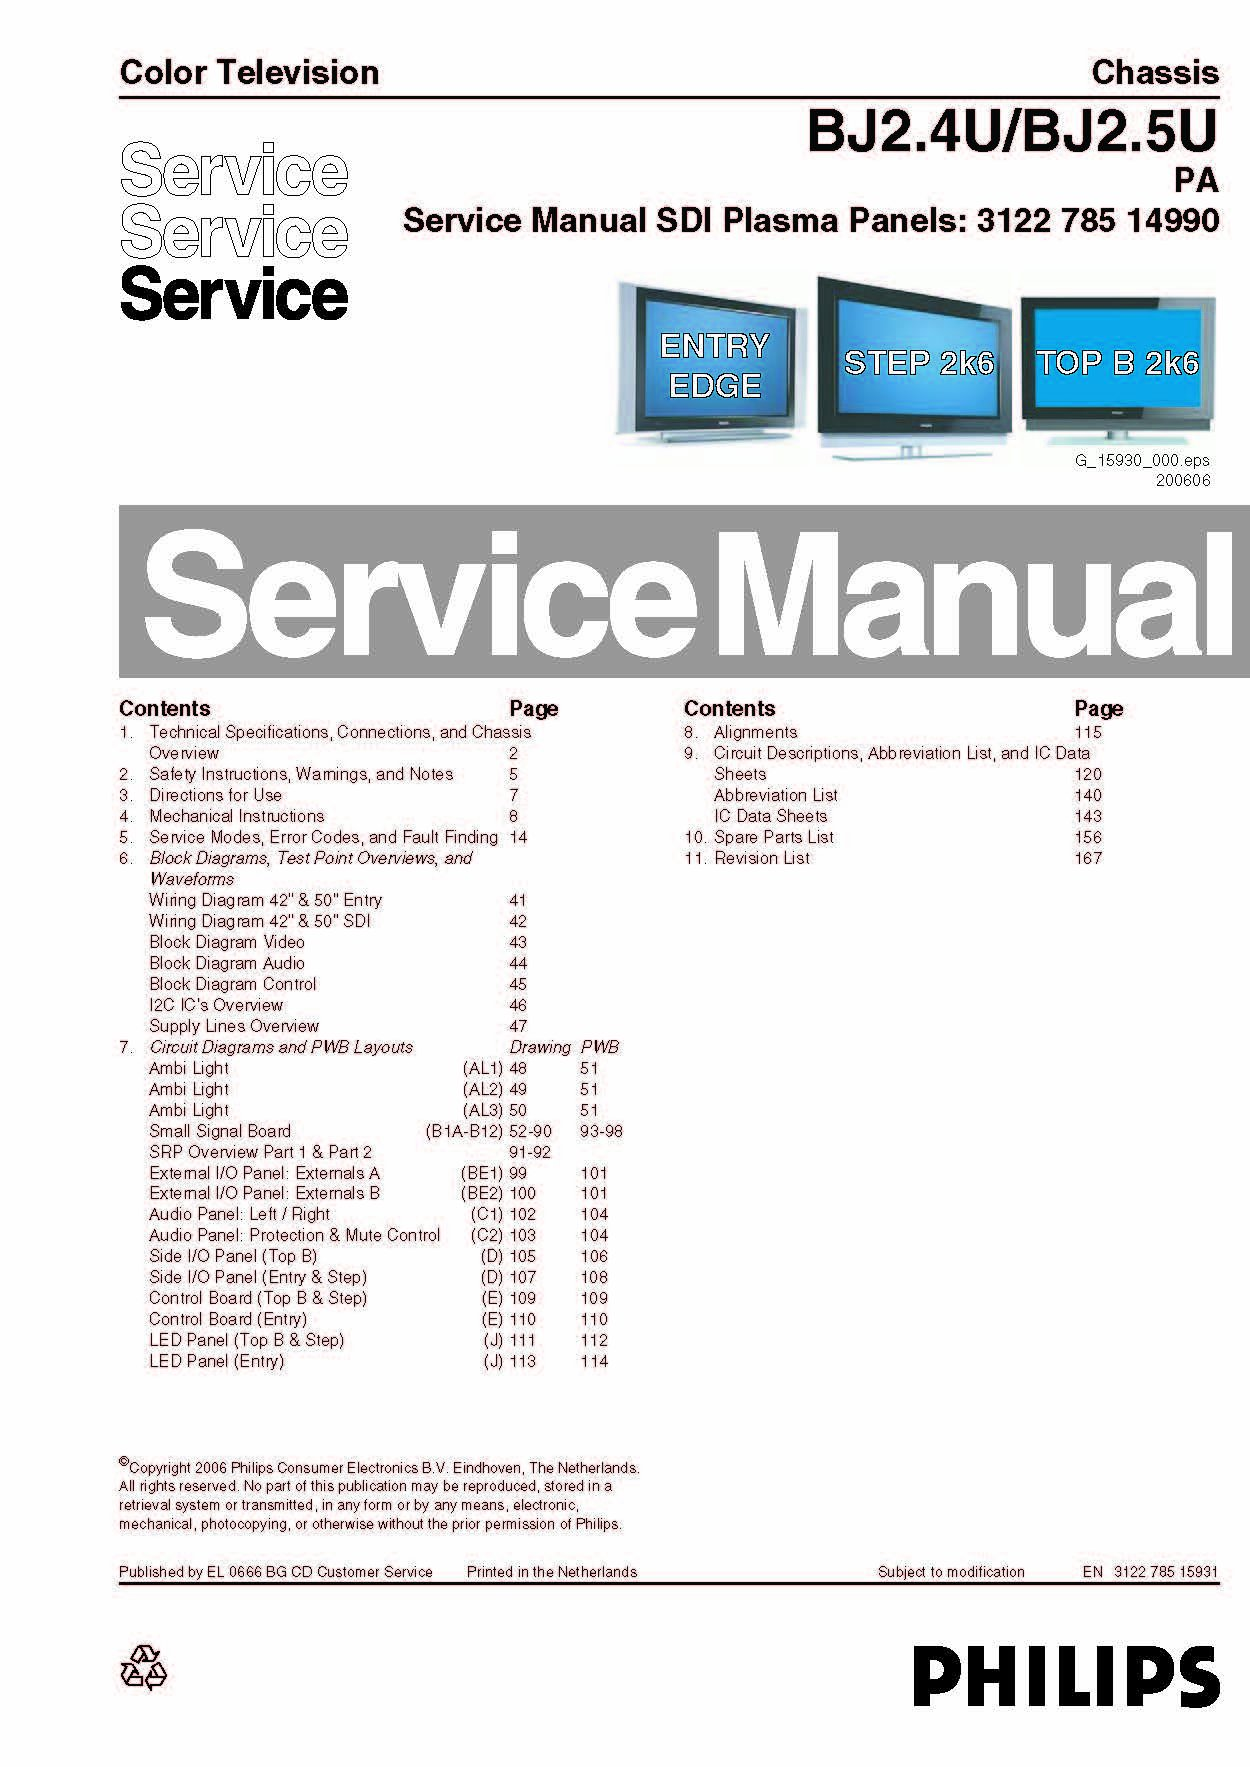 Philips 42pf9431d37 42pf9431d37 service manual with schematics philips 42pf9431d37 42pf9431d37 service manual with schematics philips amazon books fandeluxe Images